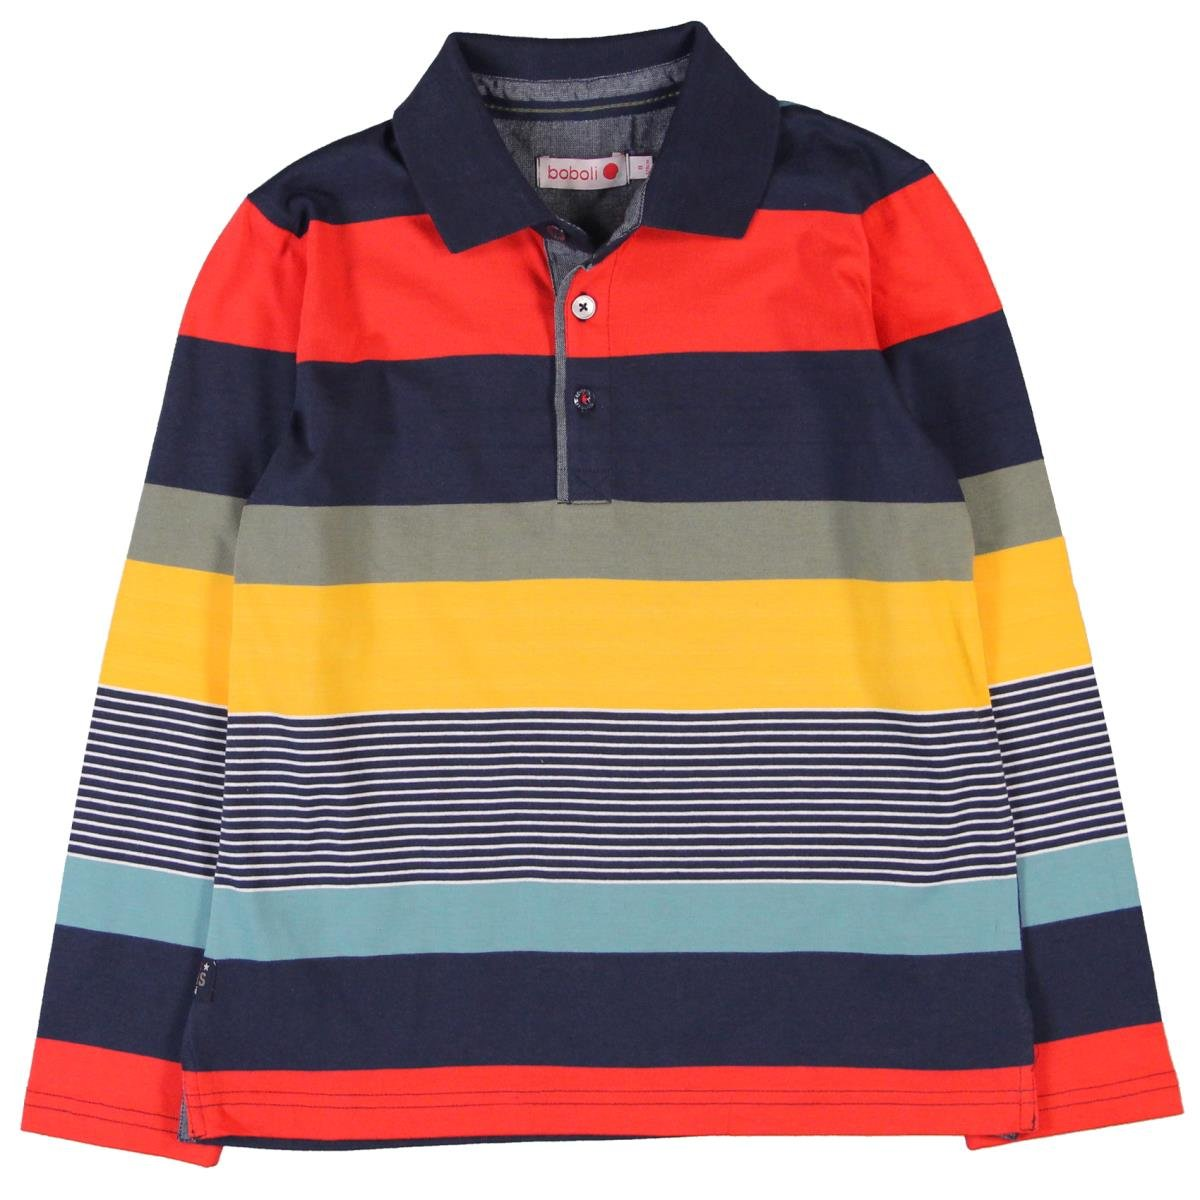 Boboli Jungen Poloshirt Knit Polo for Boy Bóboli 514099